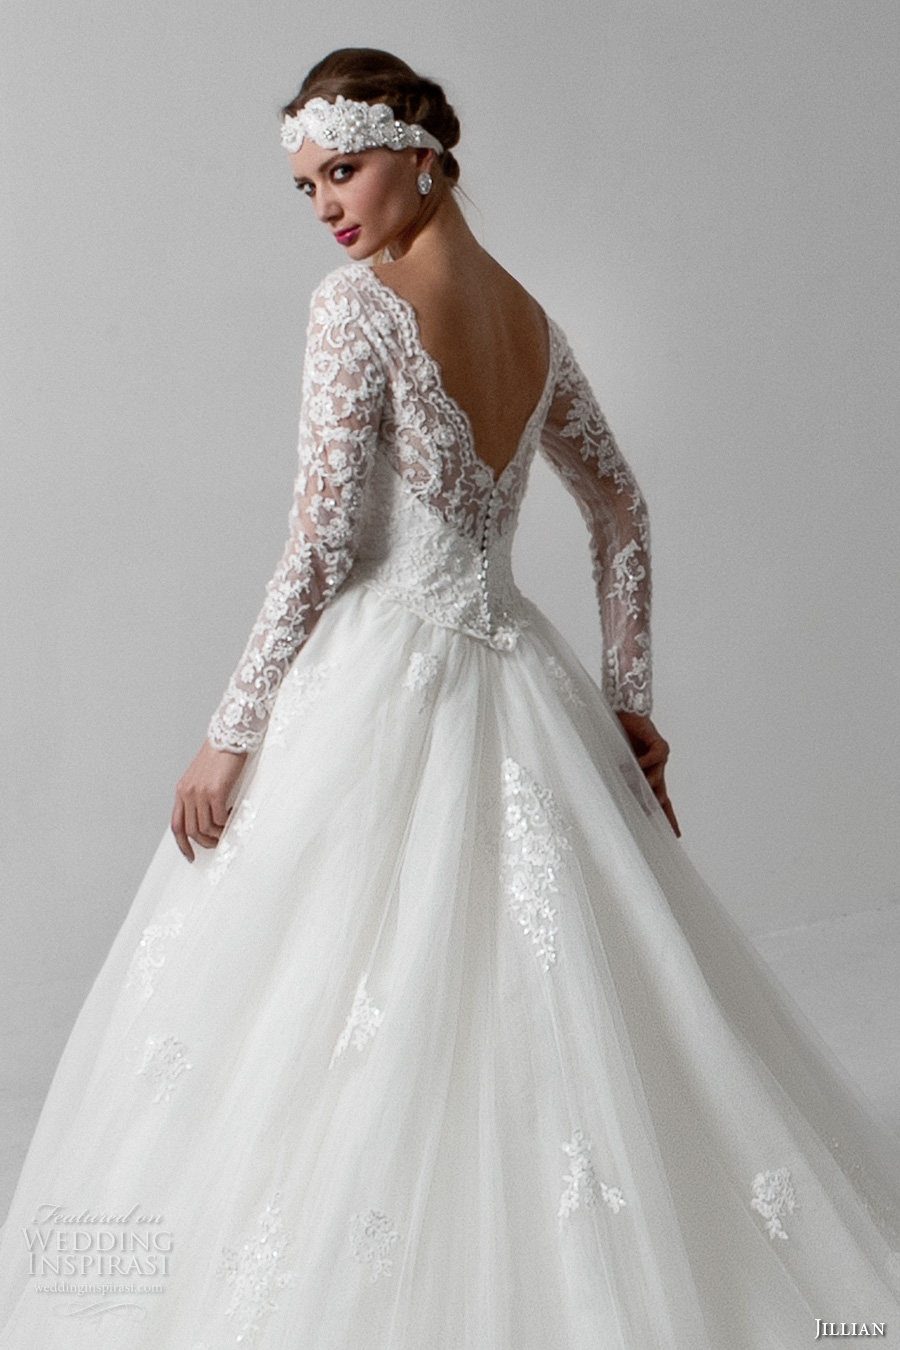 jillian 2017 bridal long sleeves v neck heavily embellished bodice princess a line wedding dress v back monarch train (melody) zbv